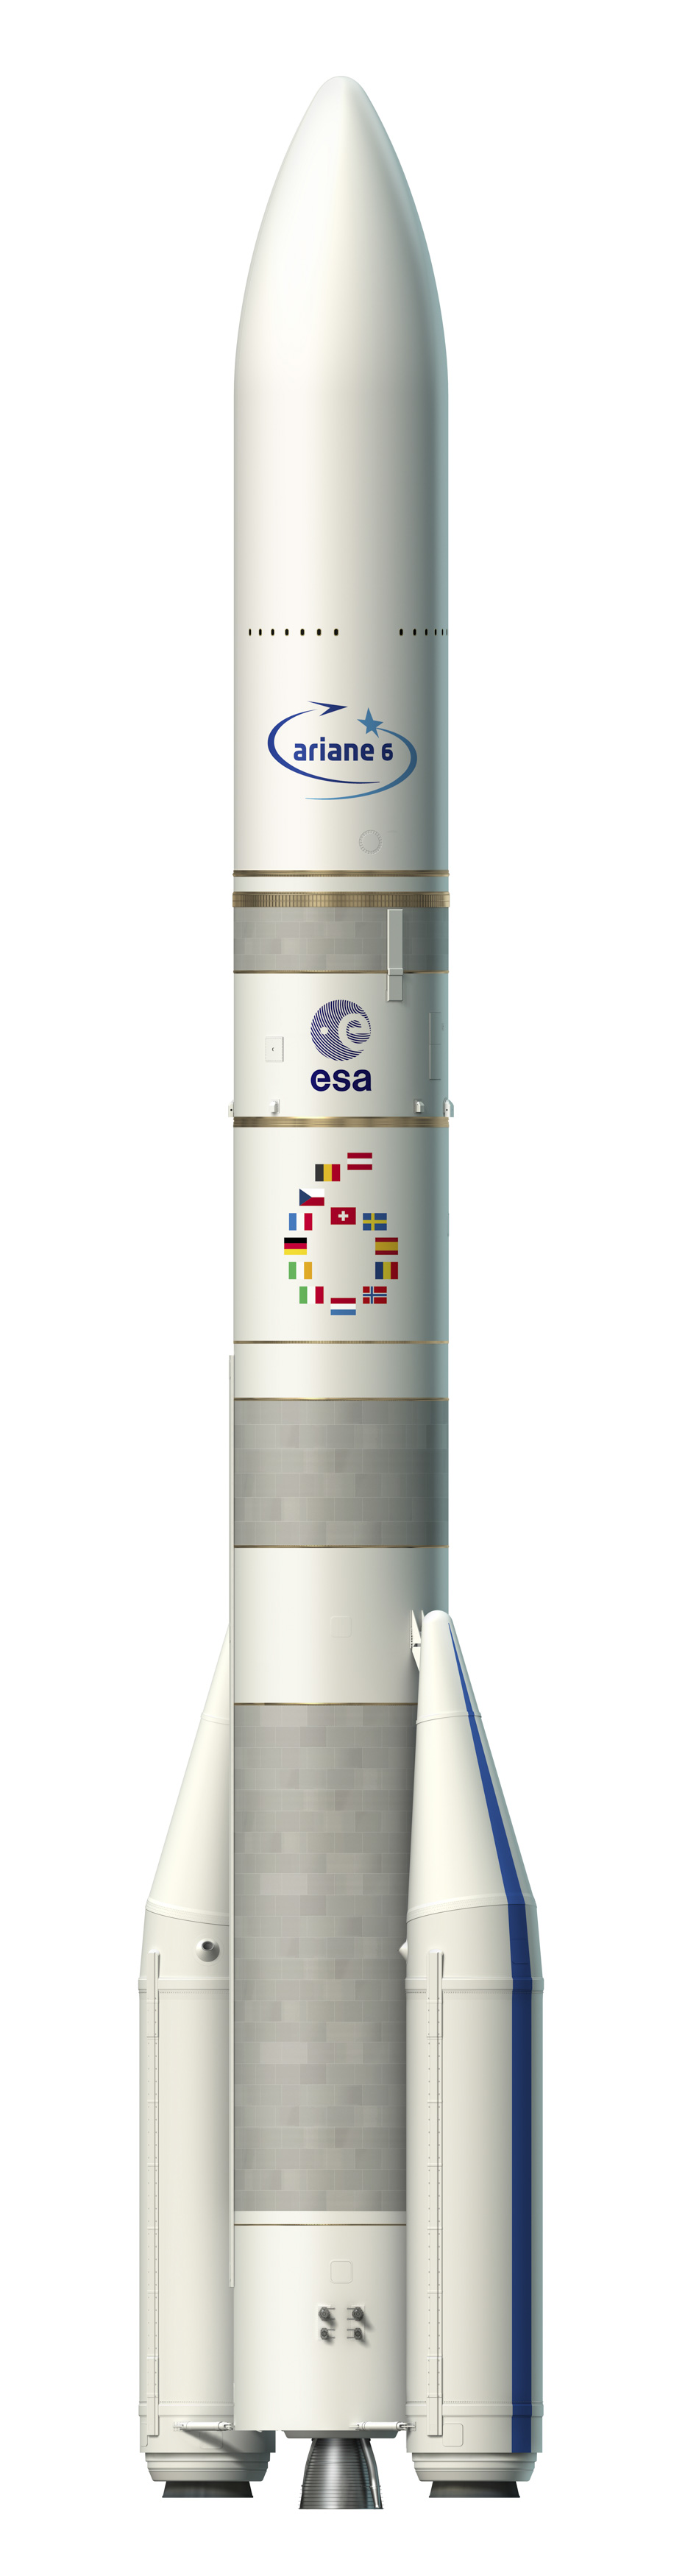 ESA Announces Plans for Galileo Satellites to Fly on Ariane 6